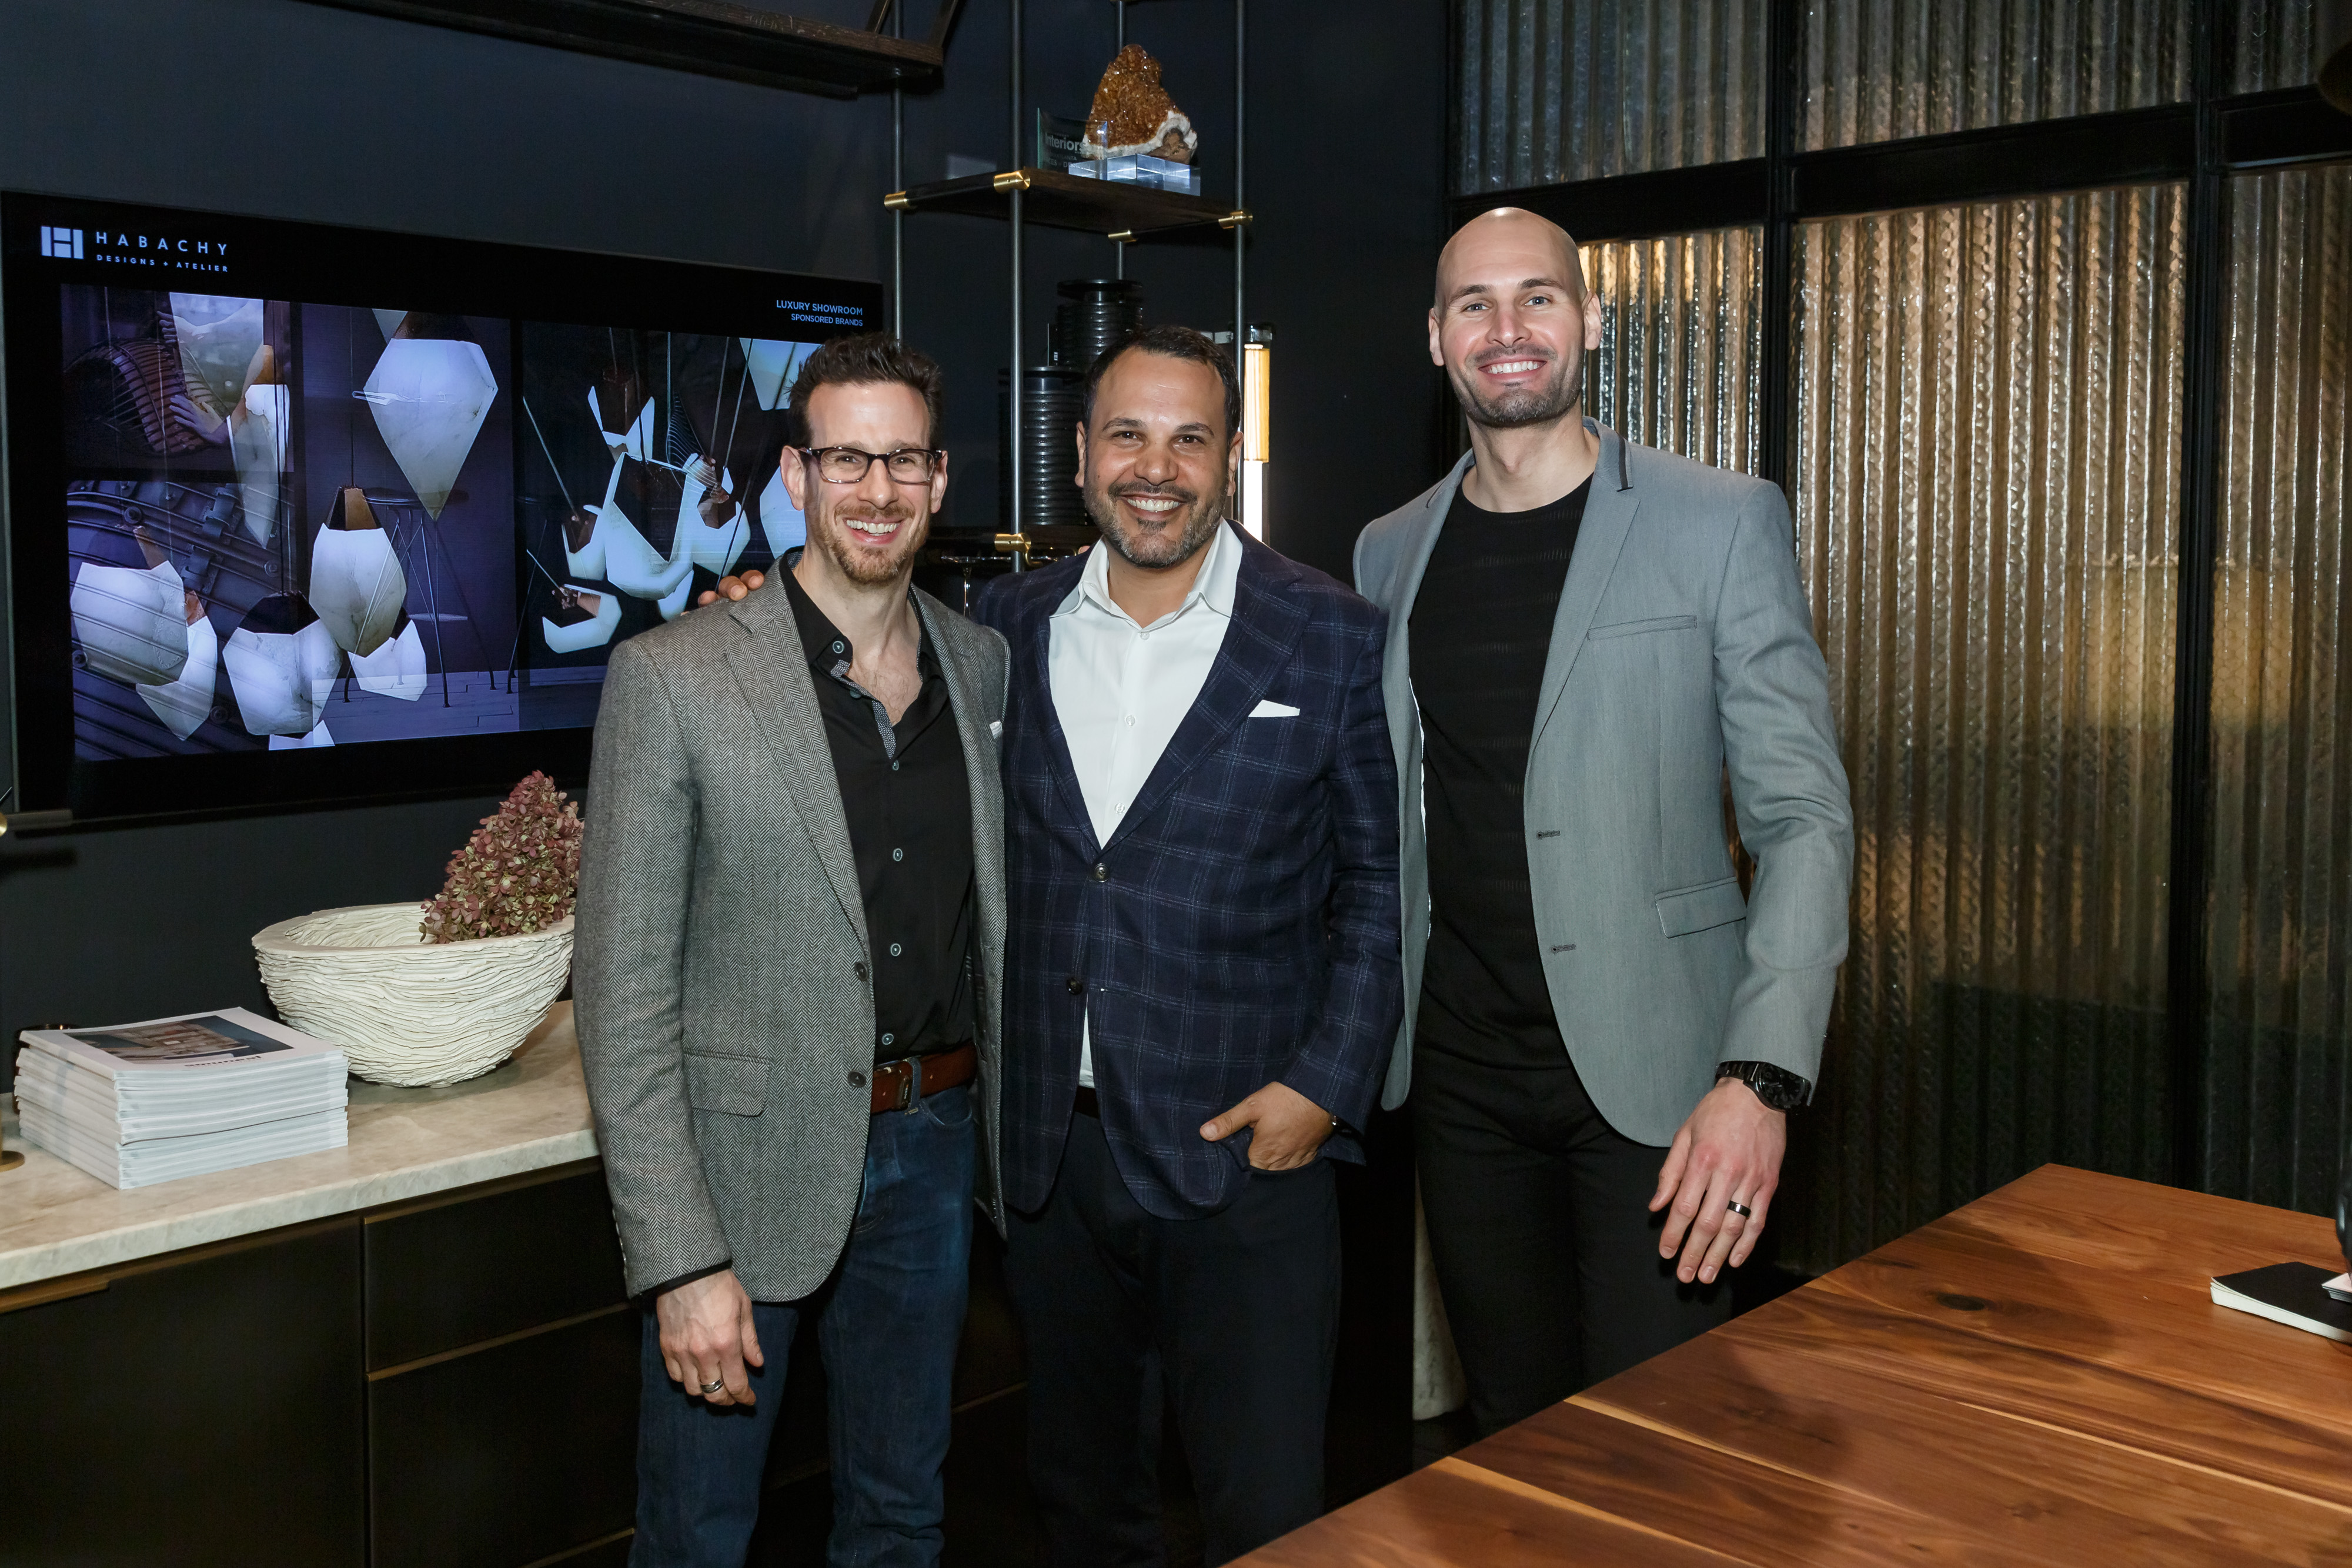 Michael Habachy and the Amuneal team hosted a lunch-and-learn at Habachy Designs + Atelier.